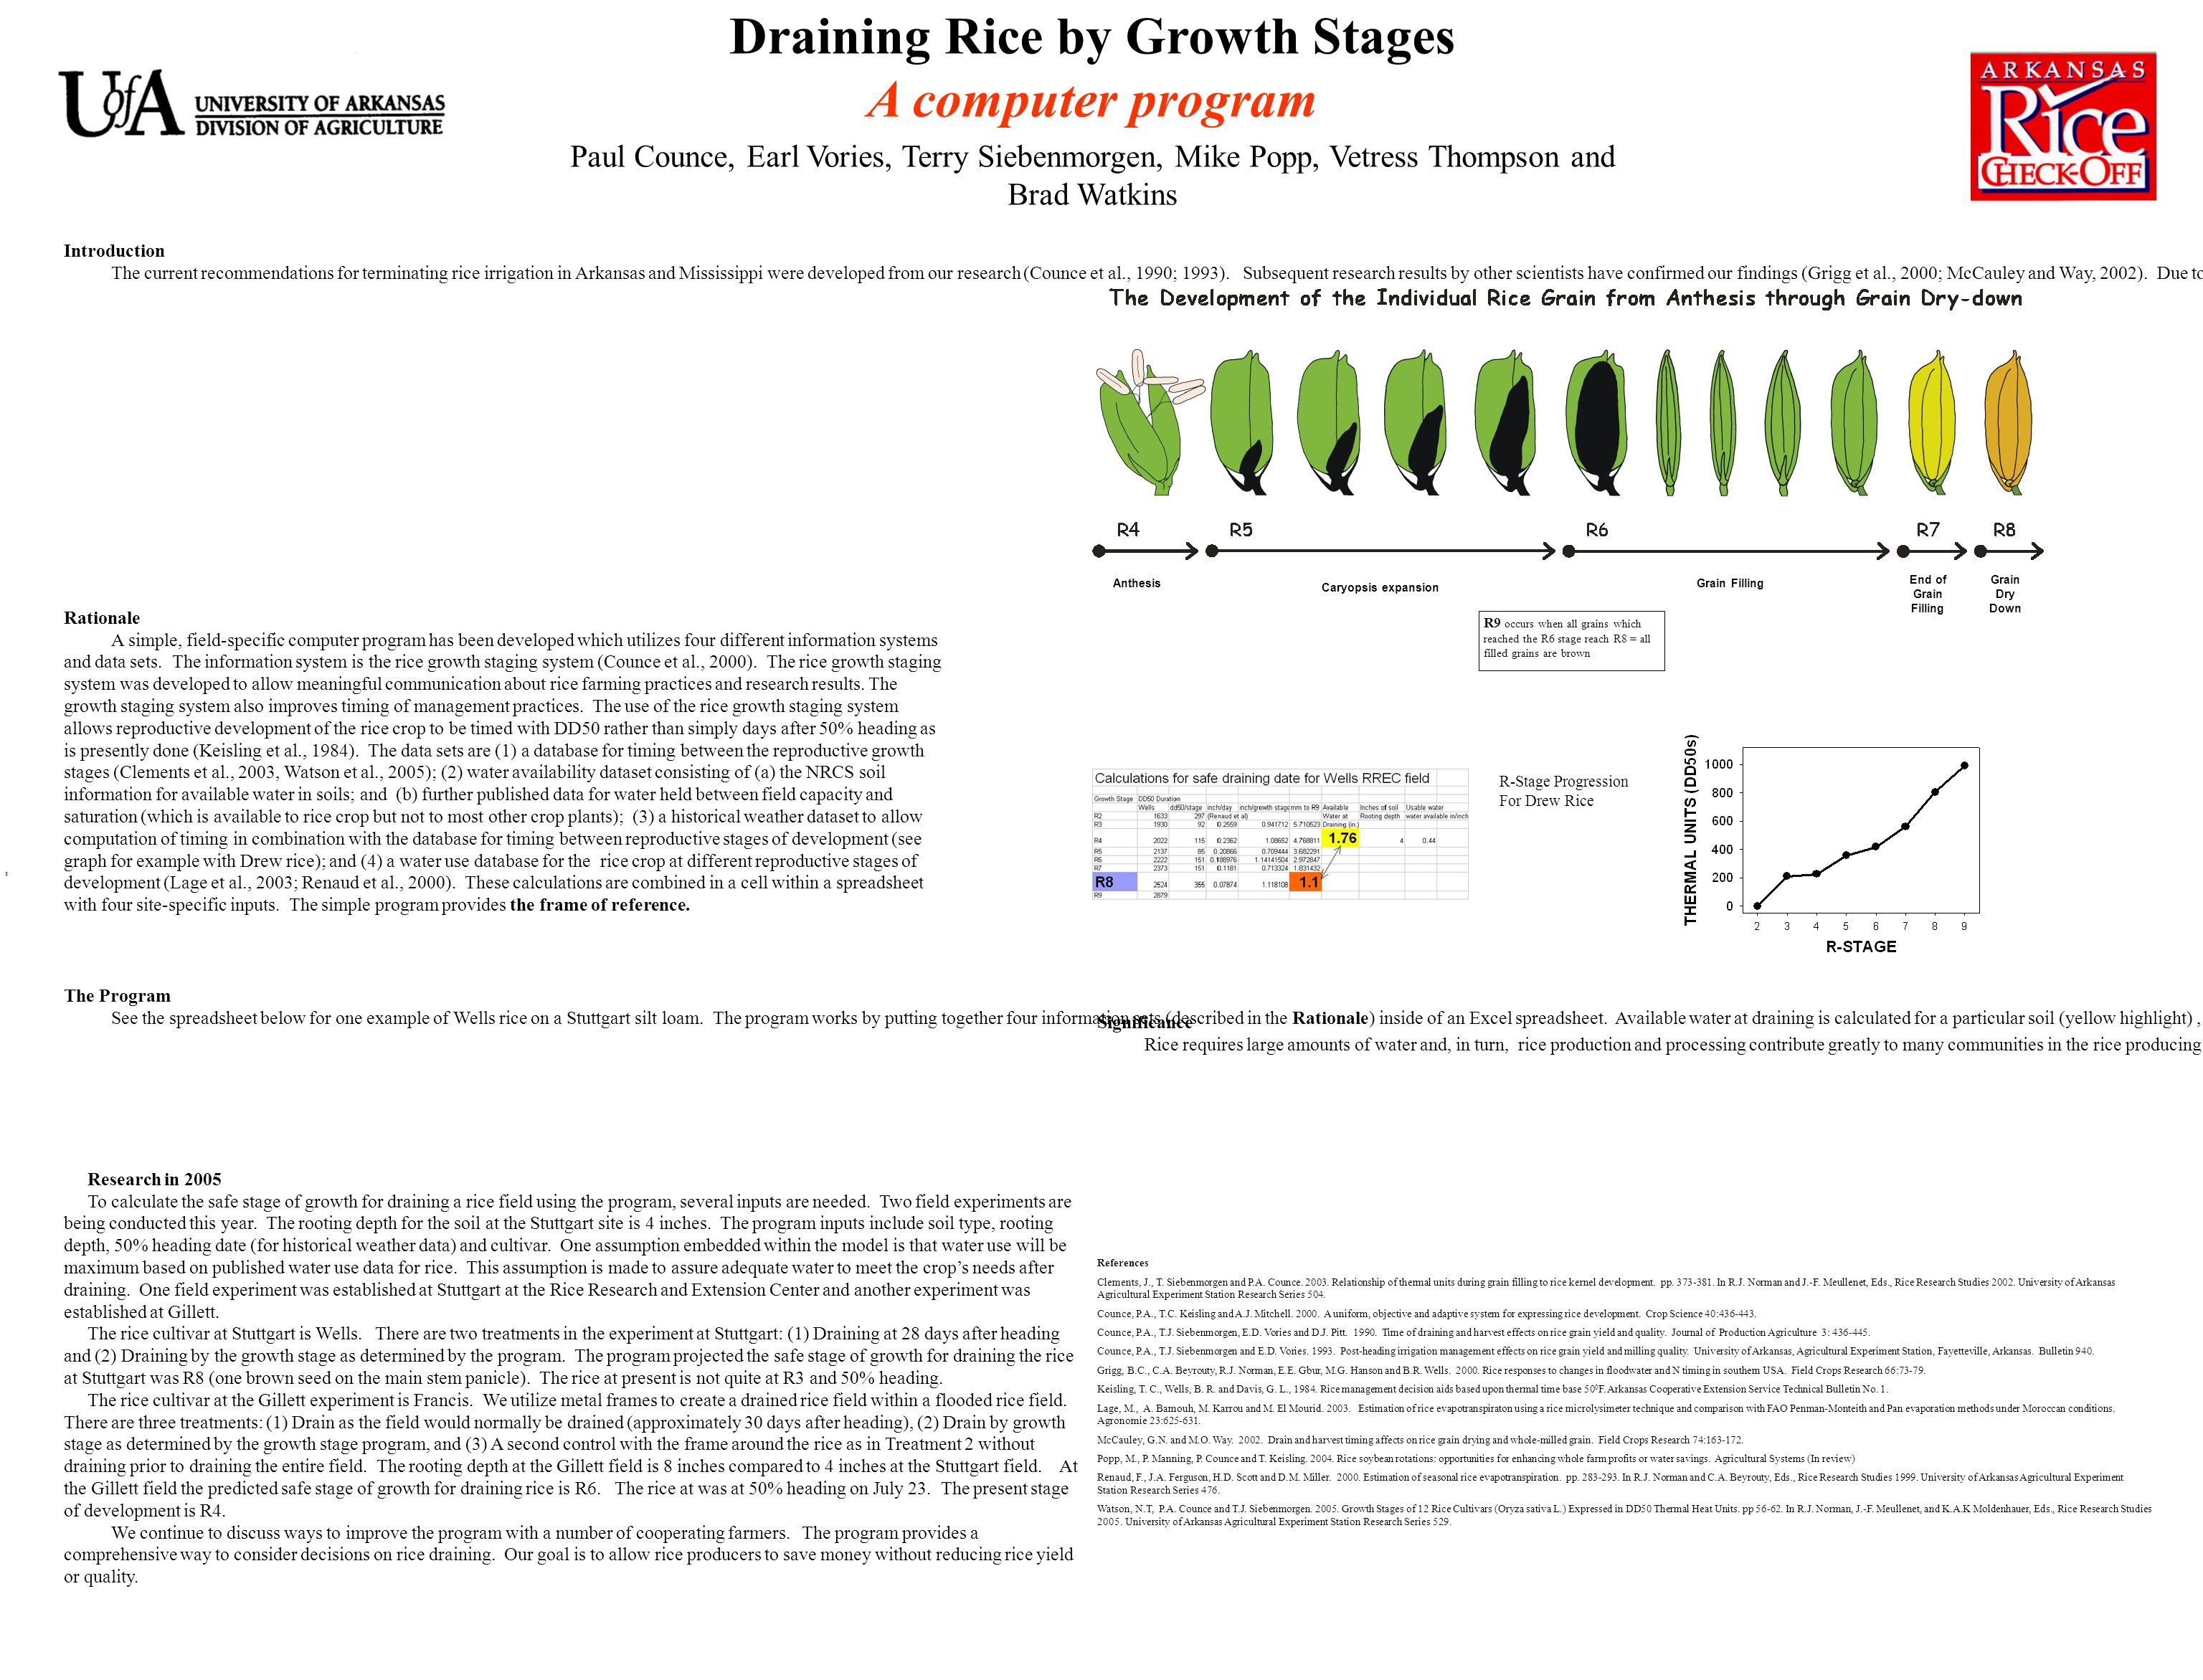 Draining Rice by Growth Stages A computer program Paul Counce, Earl Vories, Terry Siebenmorgen, Mike Popp, Vetress Thompson and Brad Watkins Introduct